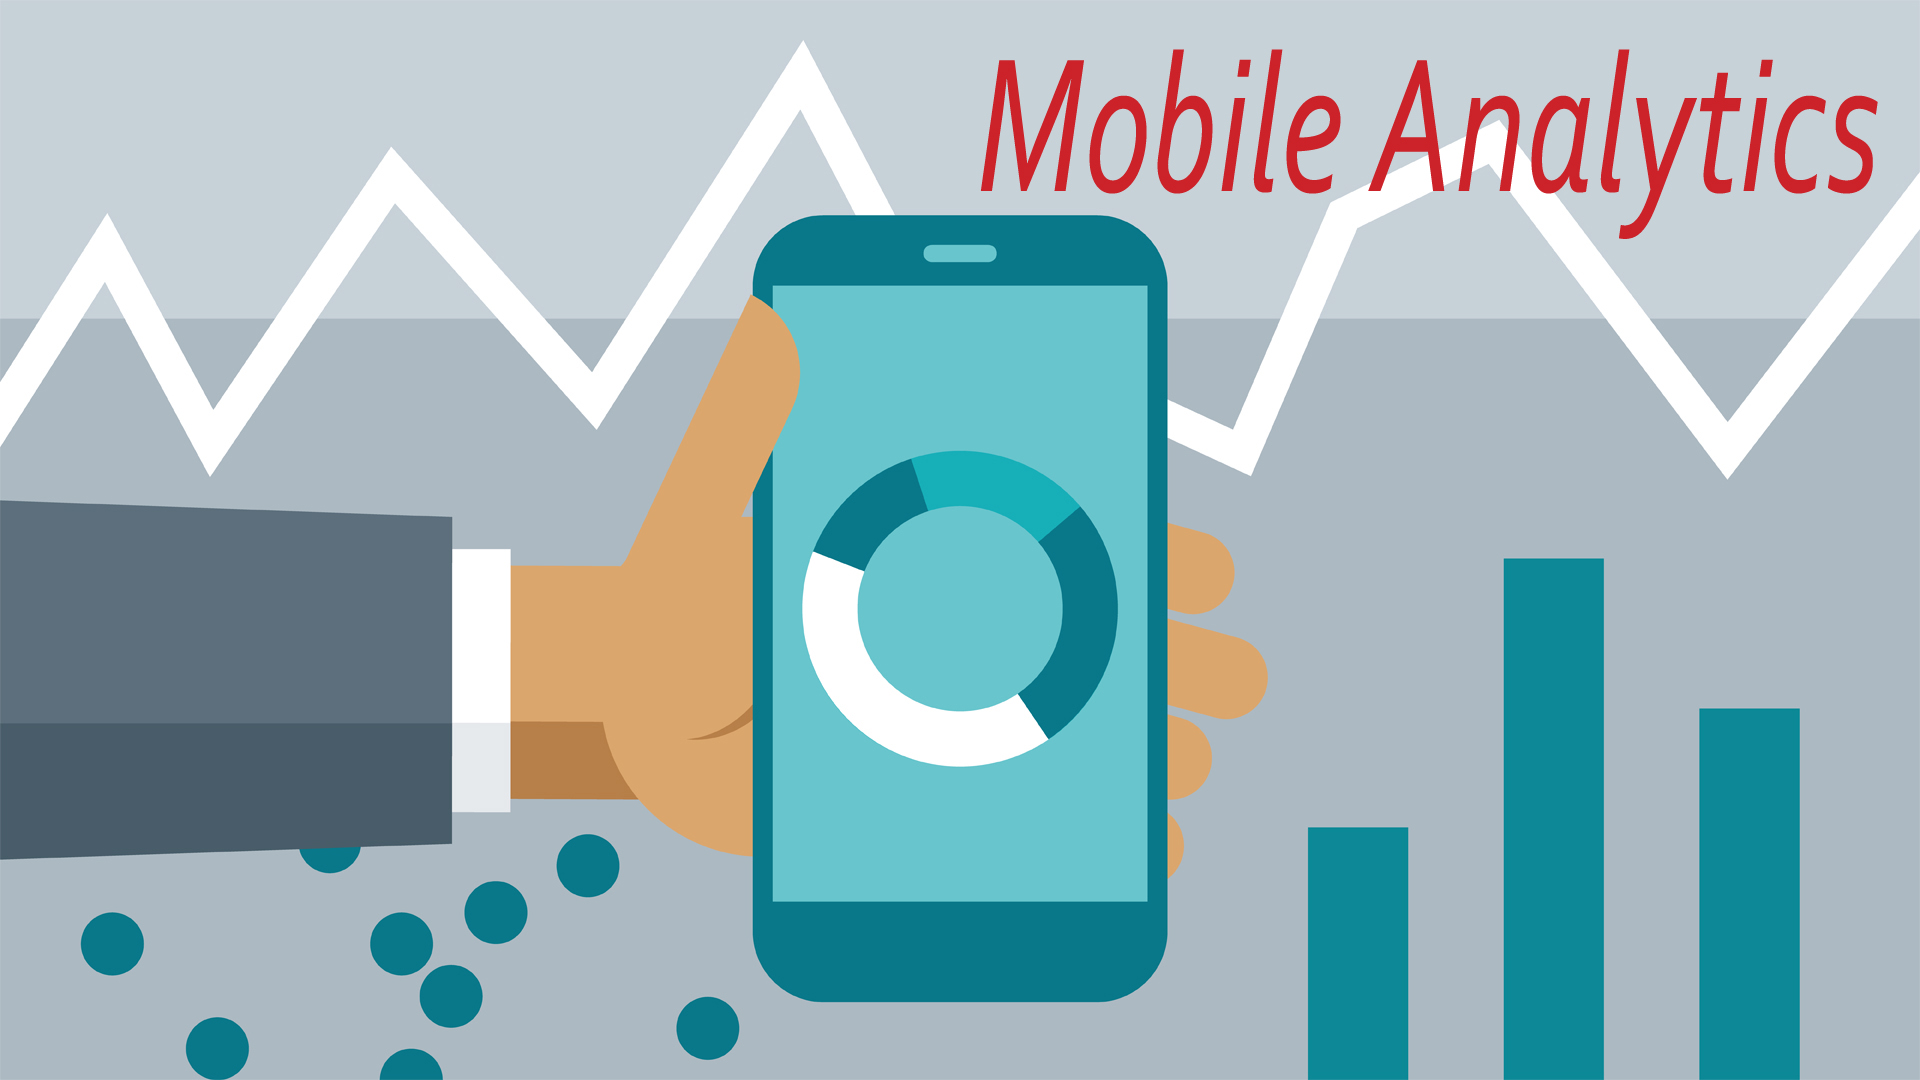 Use of Mobile analytics in software development